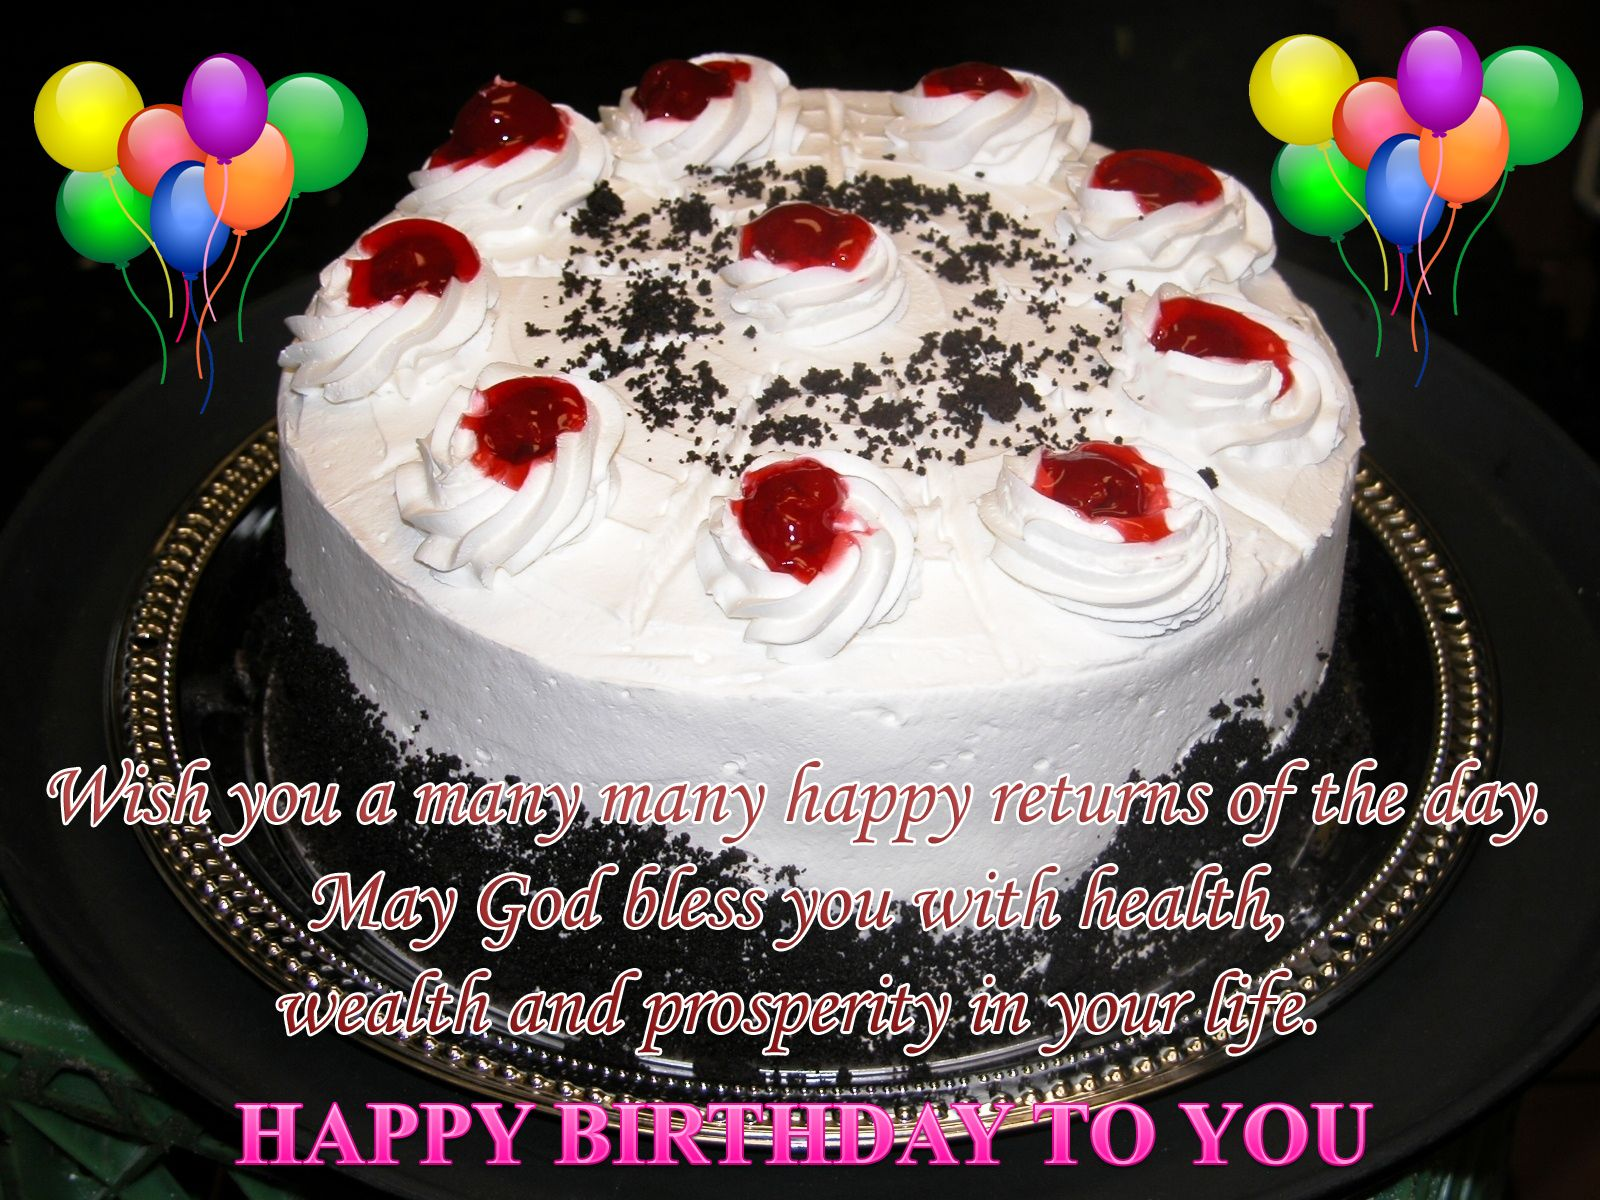 Free Birthday Quotes And Images ~ Birthday wishes great ideas for best birthday wishes facebook